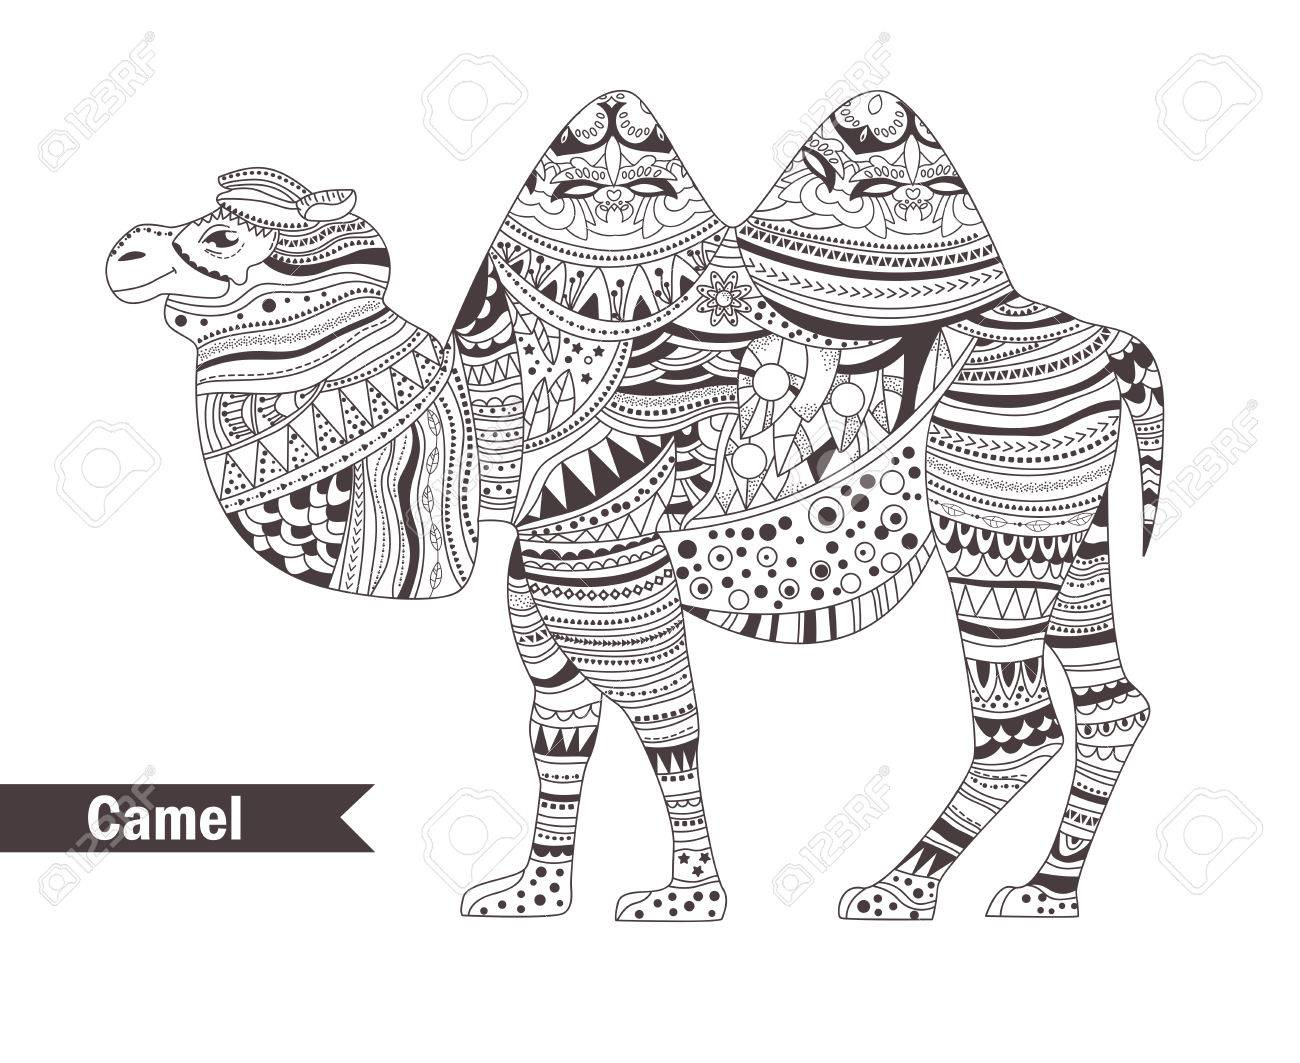 Camel Coloring Page. coloring pages camel countries gt egypt free ... | 1063x1300